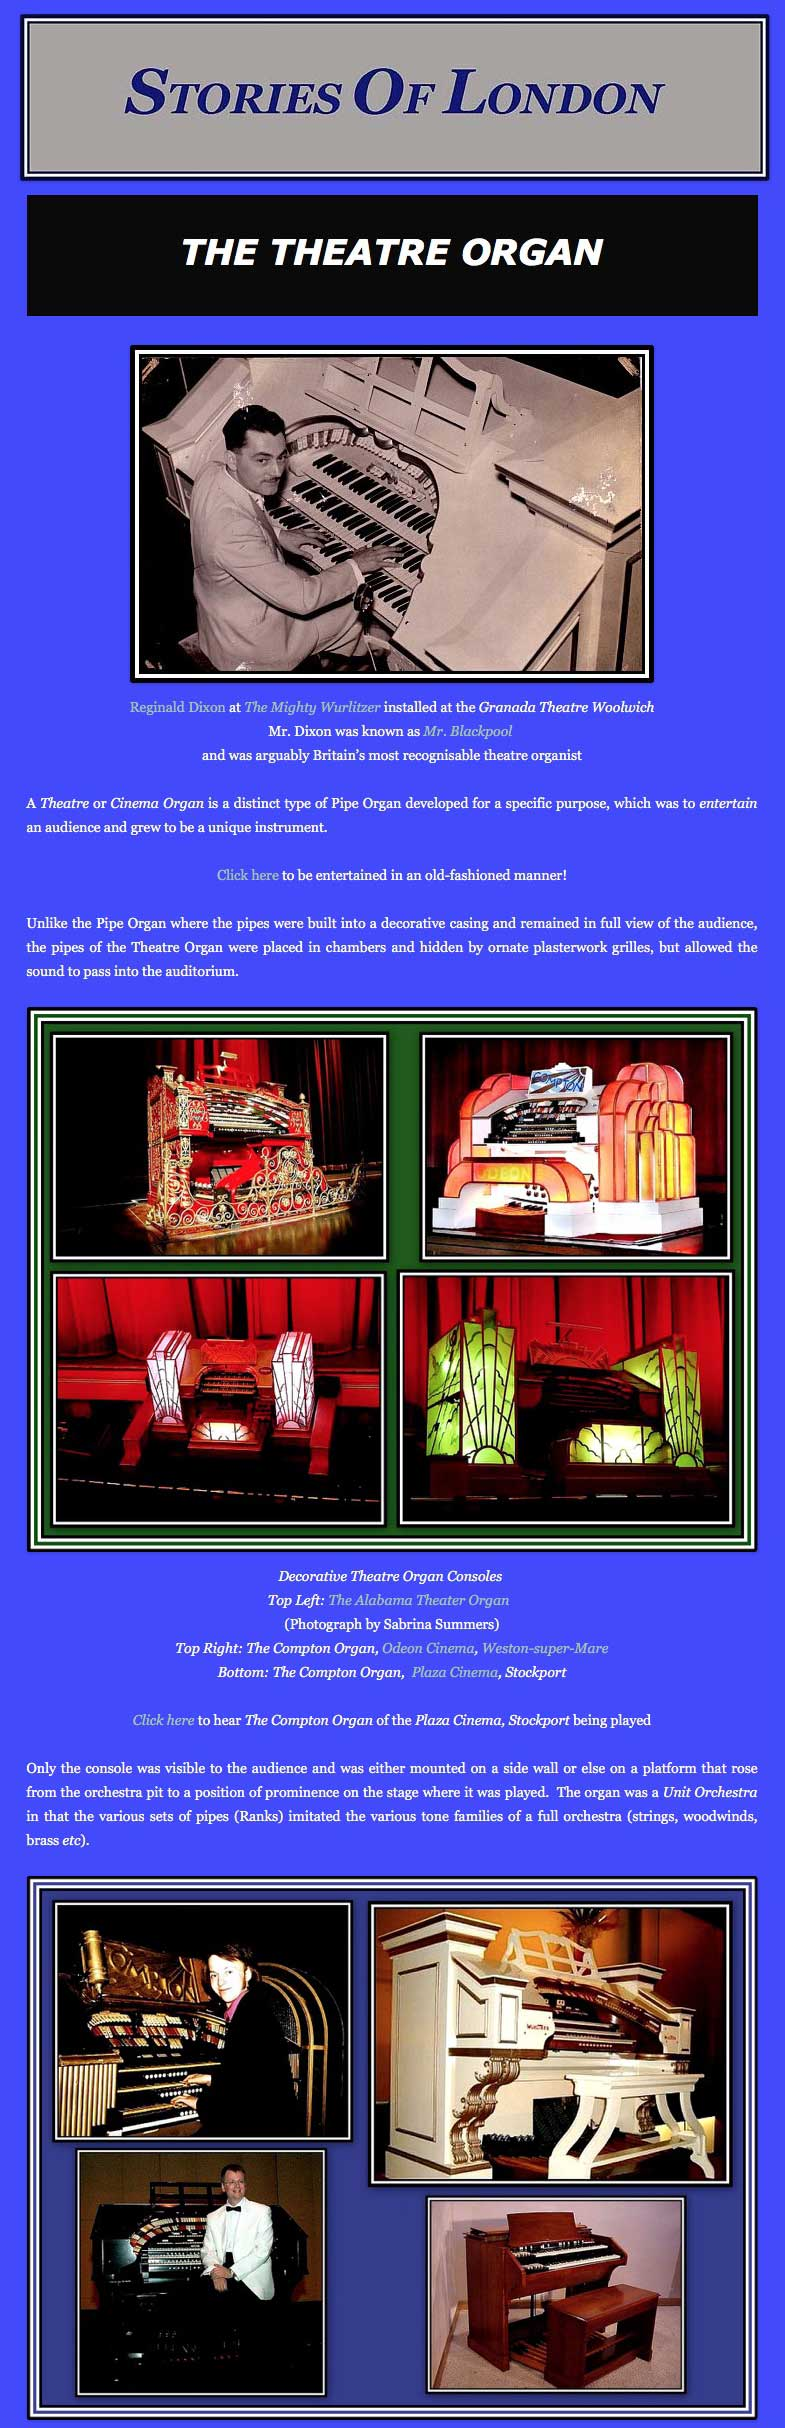 Stories of London - The Theatre Organ (Web Page Sample Images)